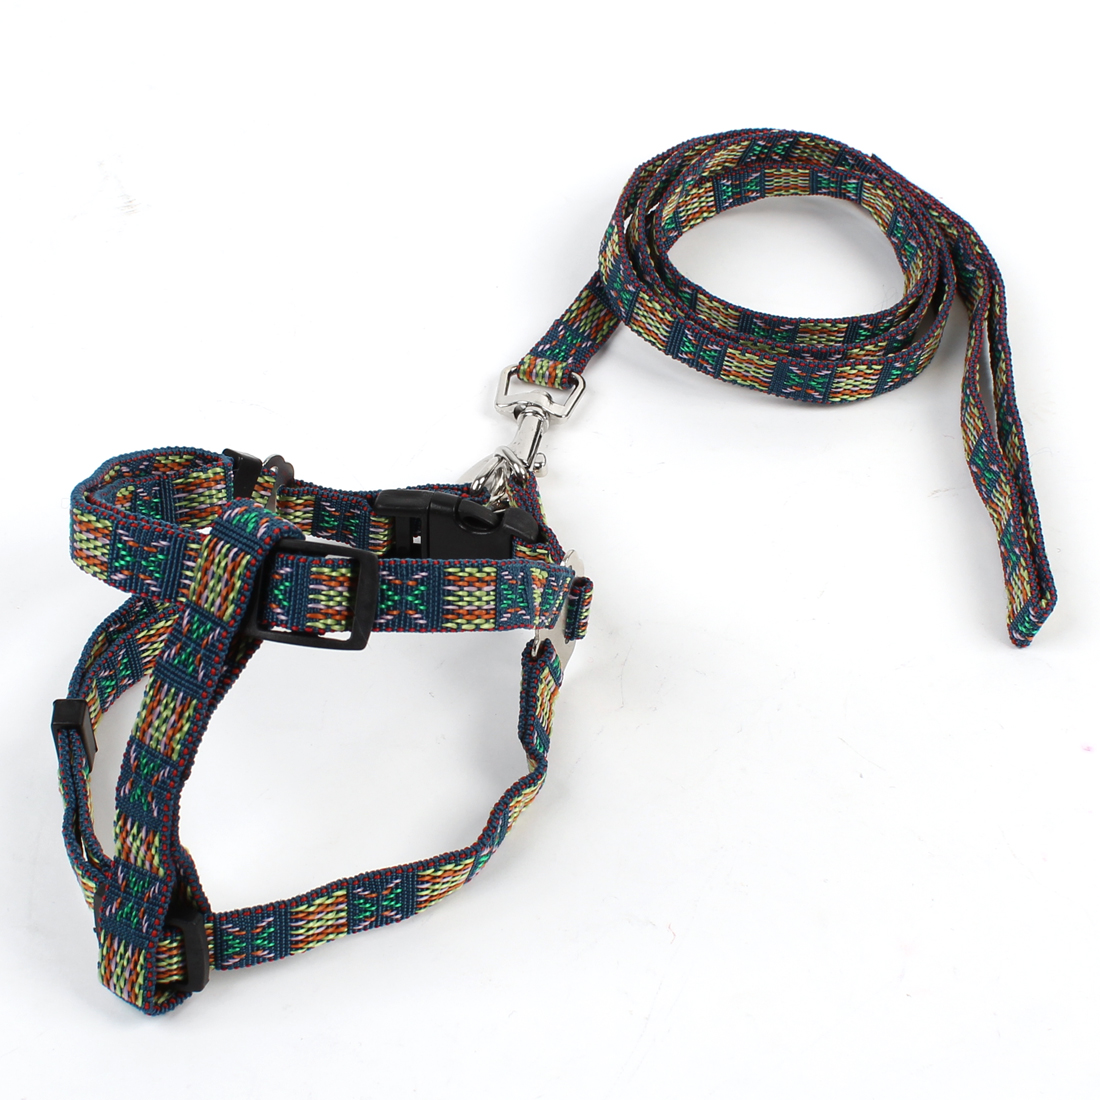 Adjustable Colorful Nylon Pet Dog Harness Leash Set w Swivel Clasp Hook